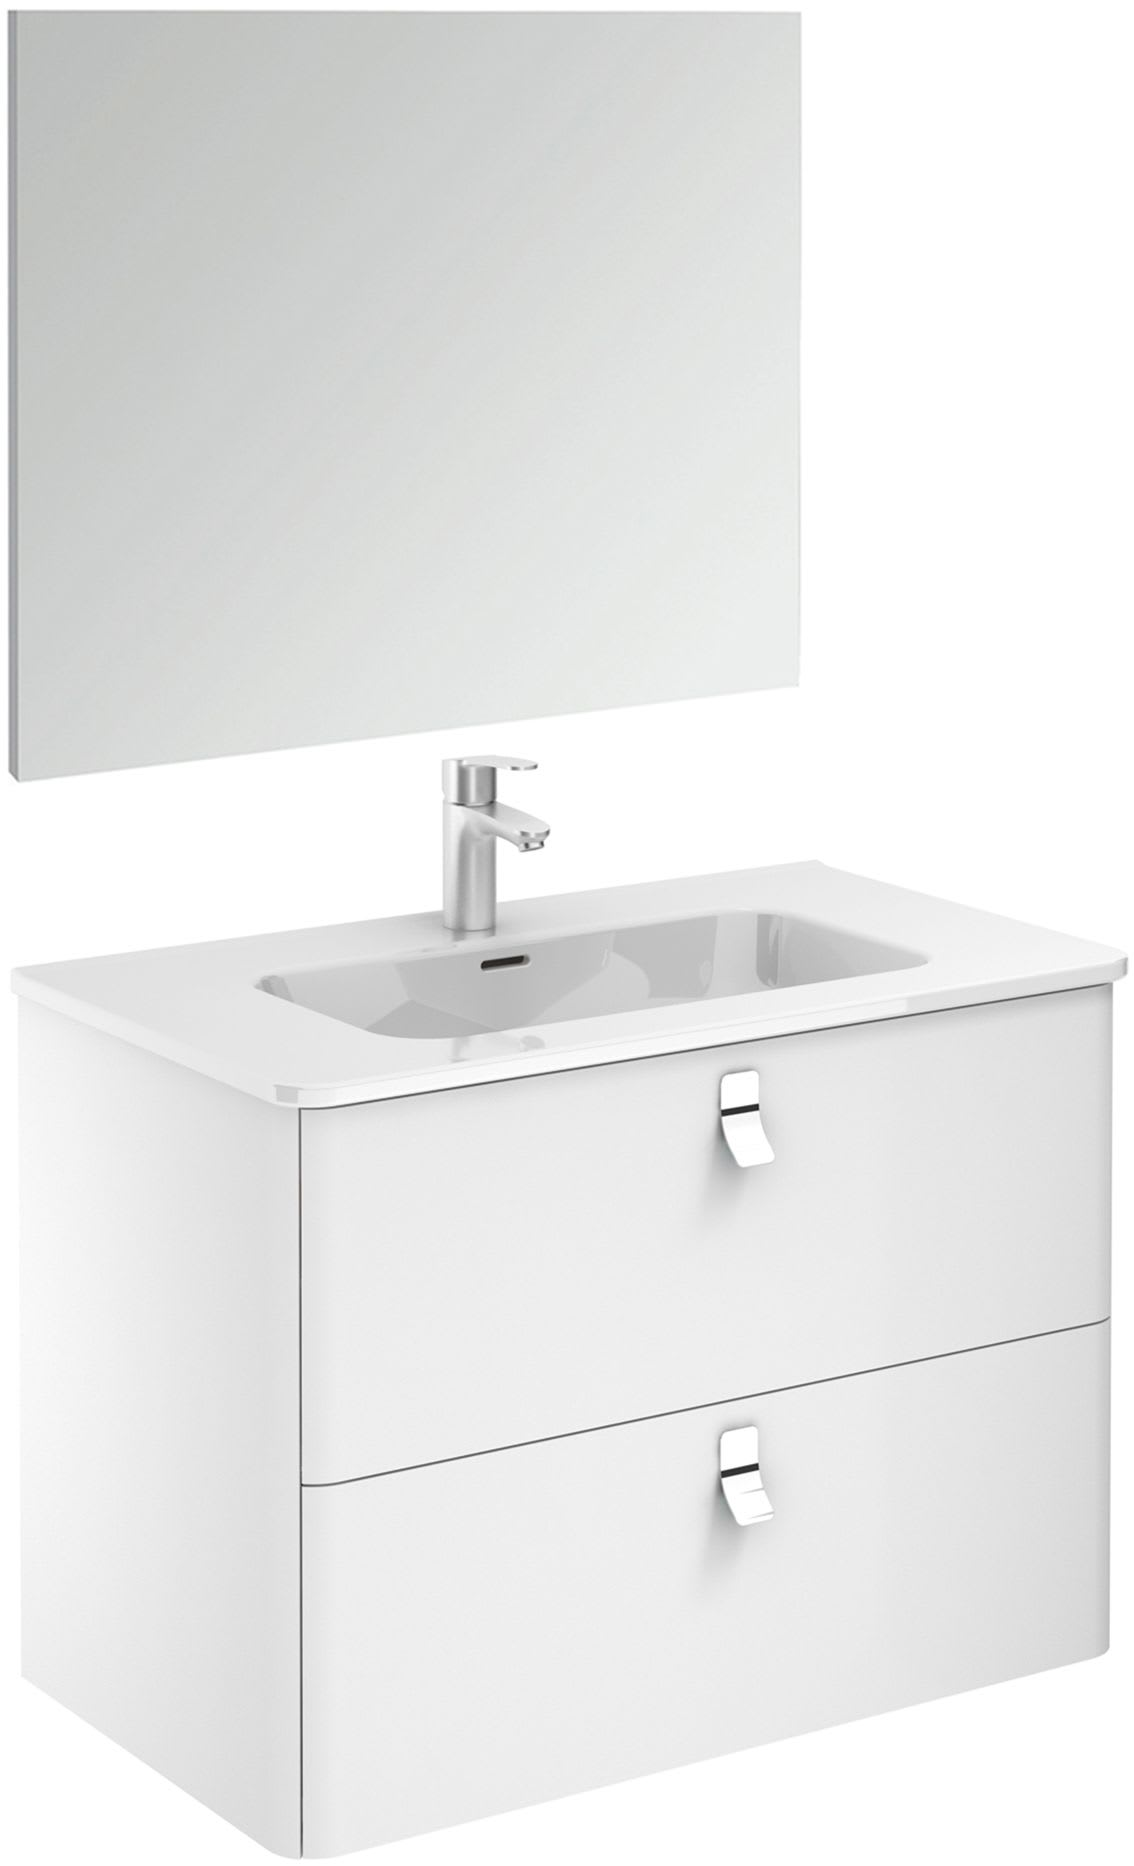 Ws Bath Collections Concert 80 Pack 1 No Nordic Oak Concert 32 Wall Mounted Single Basin Vanity Set With Engineered Wood Cabinet Ceramic Vanity Top And Frameless Mirror Faucet Com